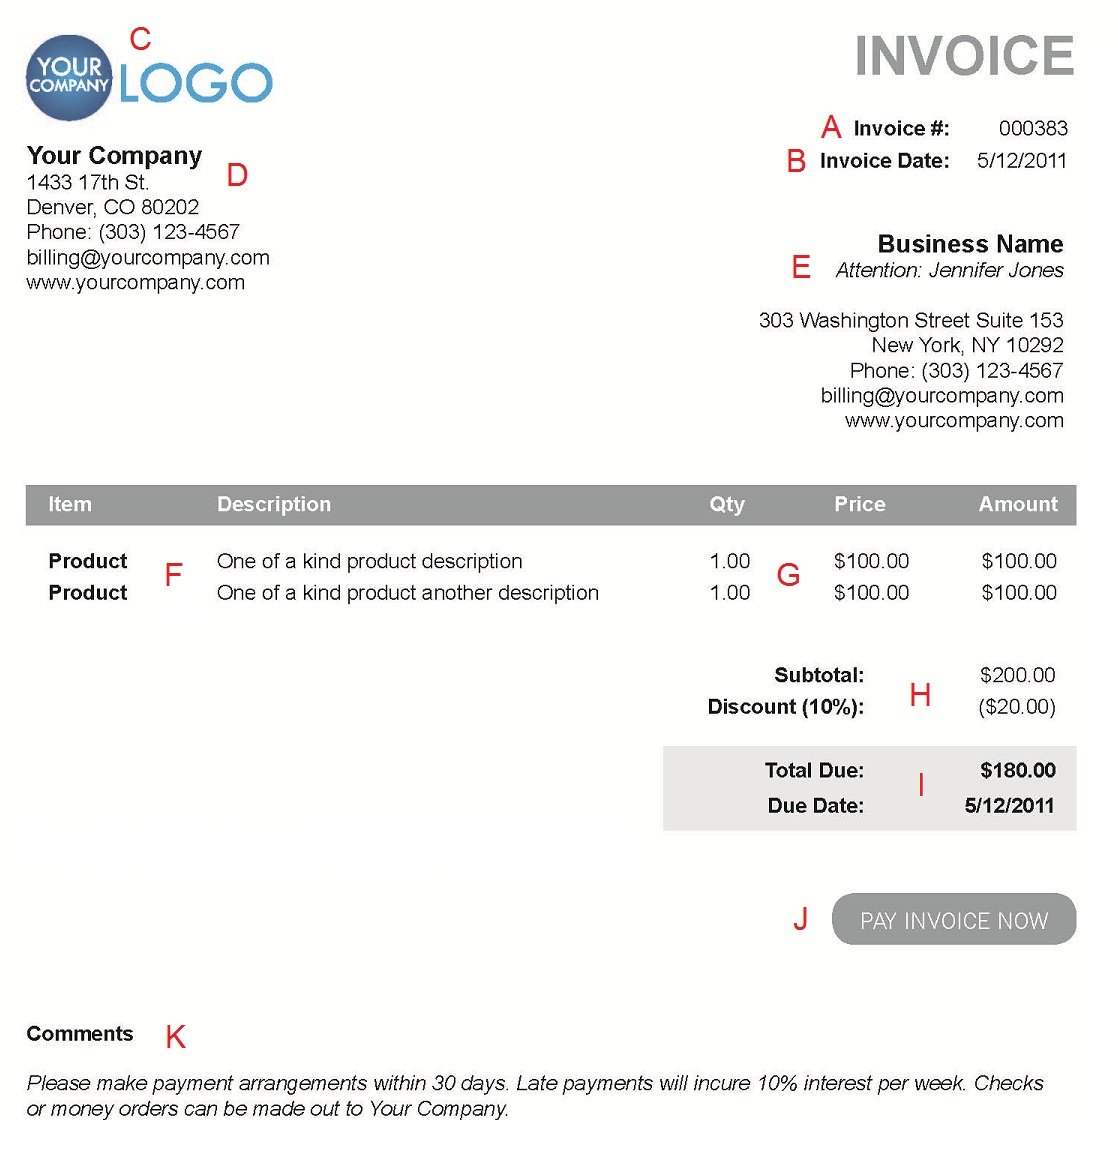 Theologygeekblogus  Pleasant The  Different Sections Of An Electronic Payment Invoice With Fetching A  With Easy On The Eye Revenue Receipt Definition Also Medicare Receipt In Addition Sample Rent Receipts And Receipt Forms Free Download As Well As Receipt Scanner For Iphone Additionally Vehicle Purchase Receipt Template From Paysimplecom With Theologygeekblogus  Fetching The  Different Sections Of An Electronic Payment Invoice With Easy On The Eye A  And Pleasant Revenue Receipt Definition Also Medicare Receipt In Addition Sample Rent Receipts From Paysimplecom